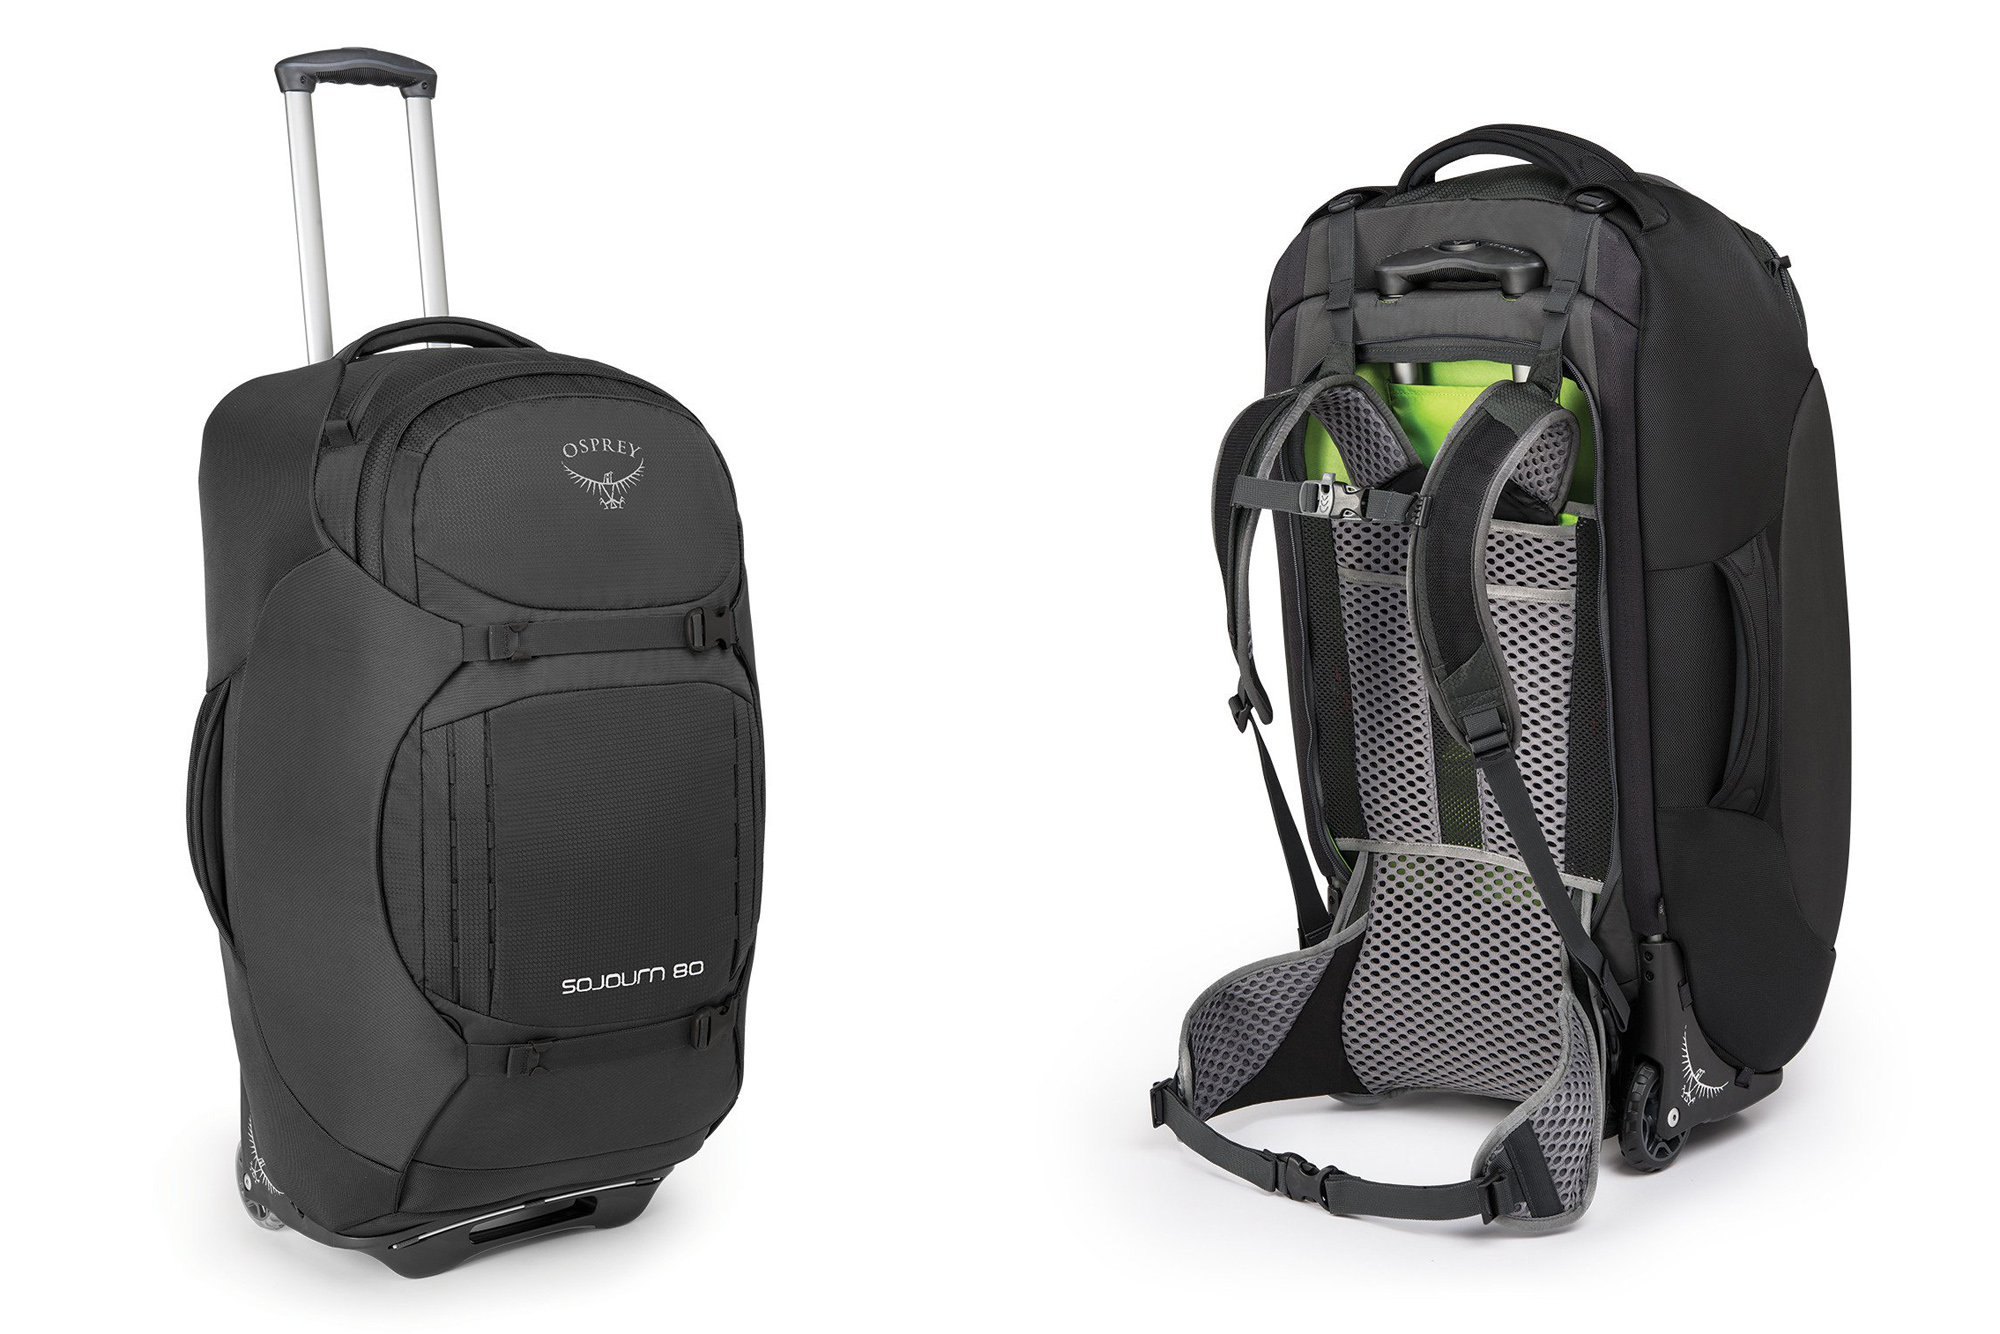 e6c384b470cd GEAR REVIEW  OSPREY SOJOURN 80L HYBRID BACKPACK - One World One Year